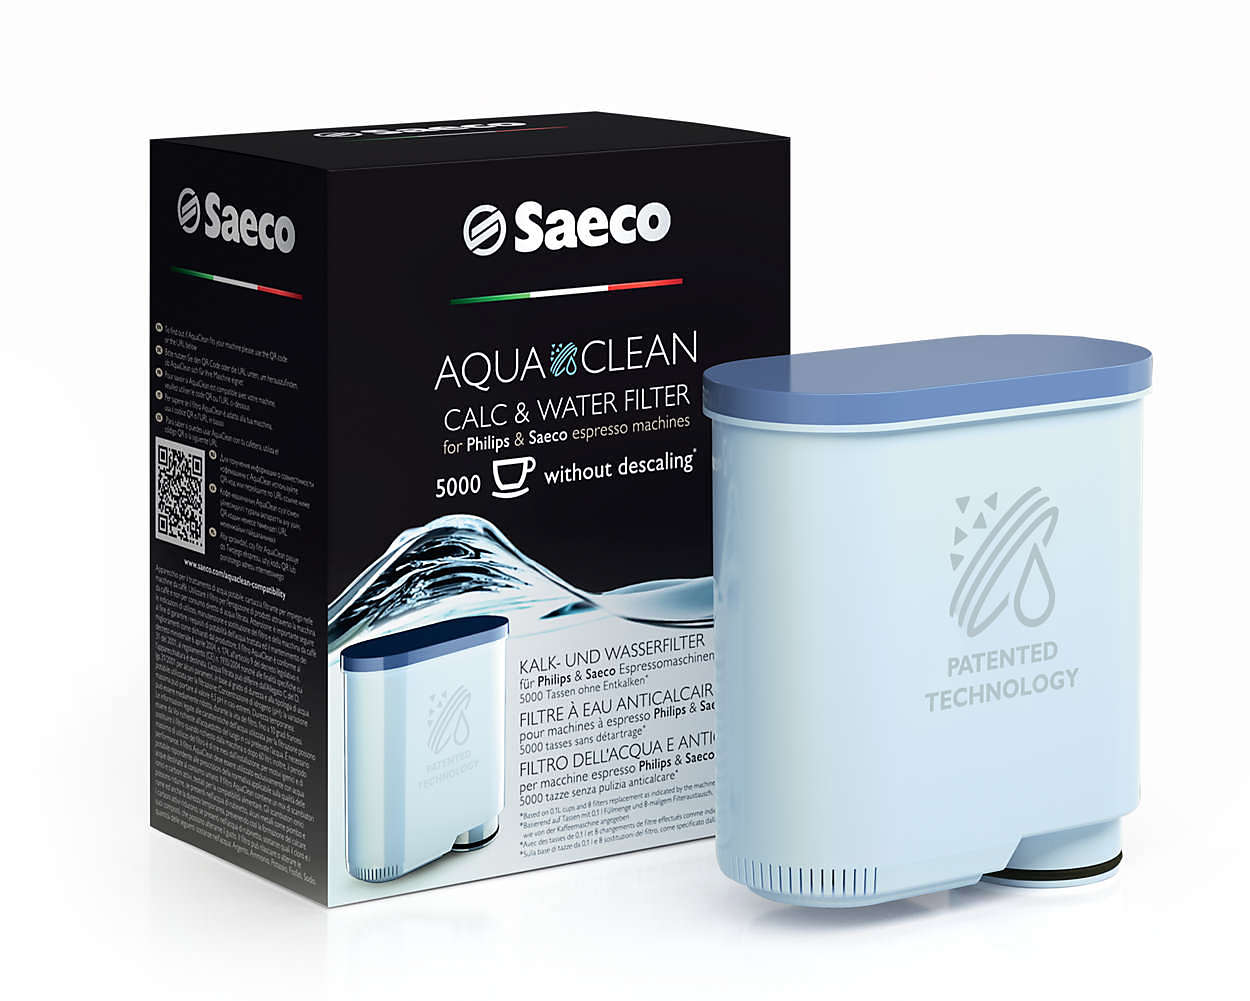 Waterfilter Aquaclean Calc And Water Filter Ca6903 47 Saeco